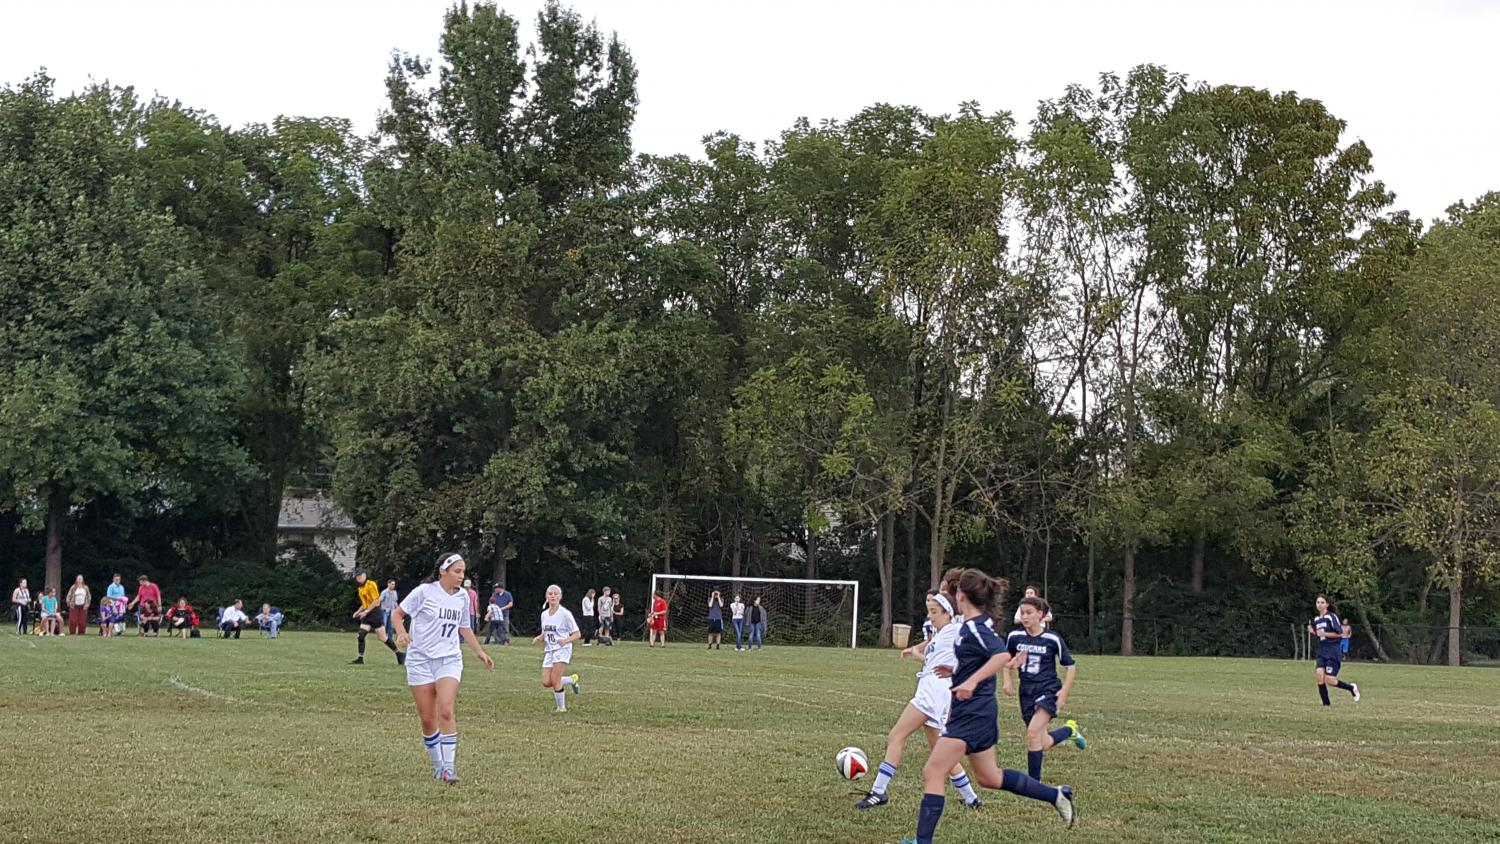 The Lions move the ball down the field, towards the opposing goal. The Lions beat the Berman Cougars 5-1 on the Lions' home field.